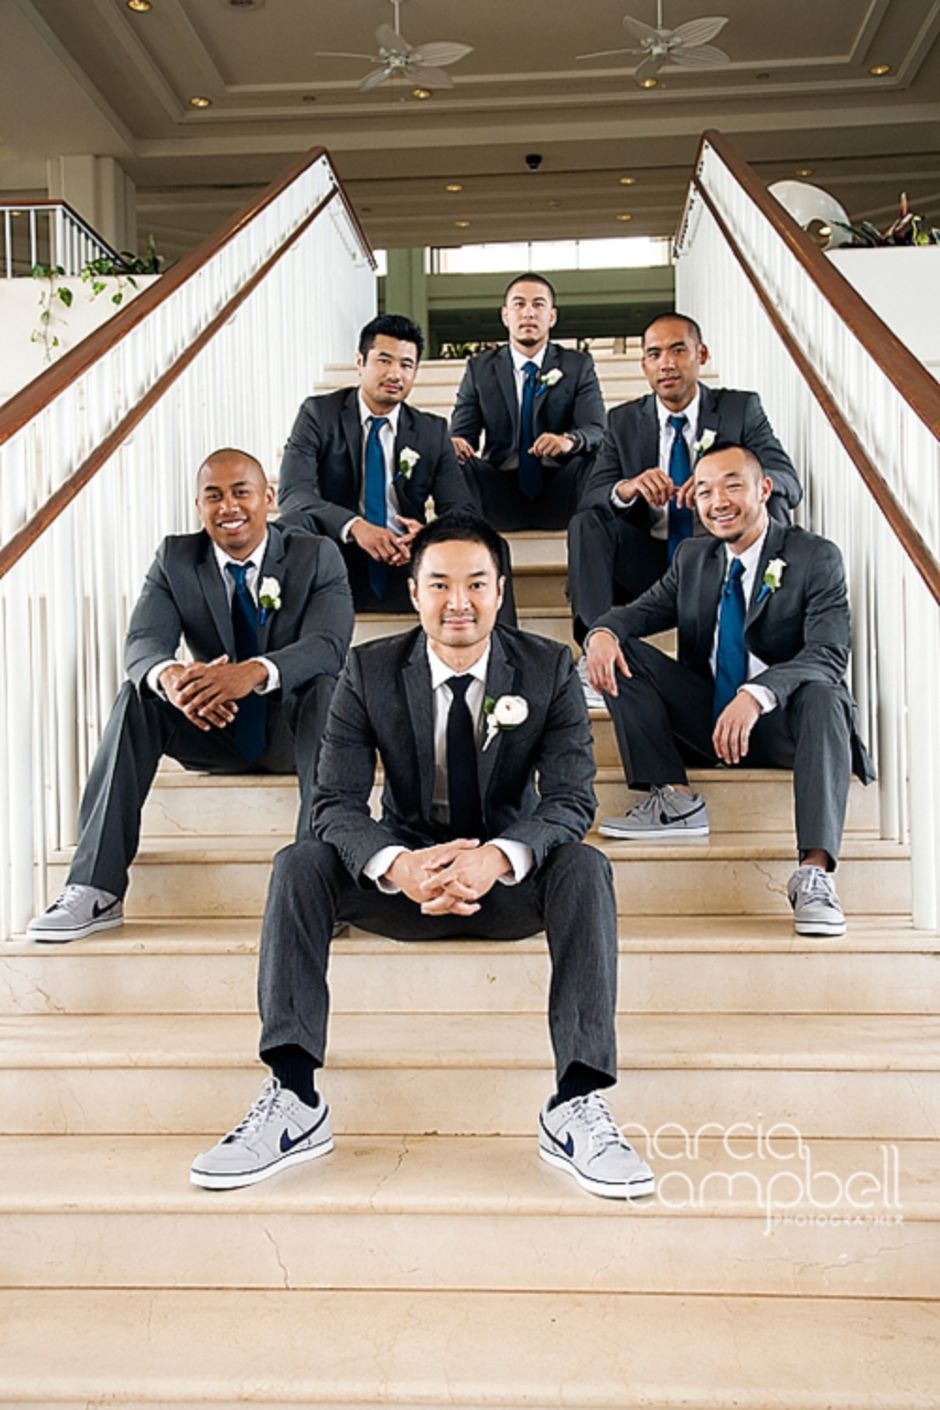 100+ Groomsmen Photos Poses Ideas You Can't Miss 23